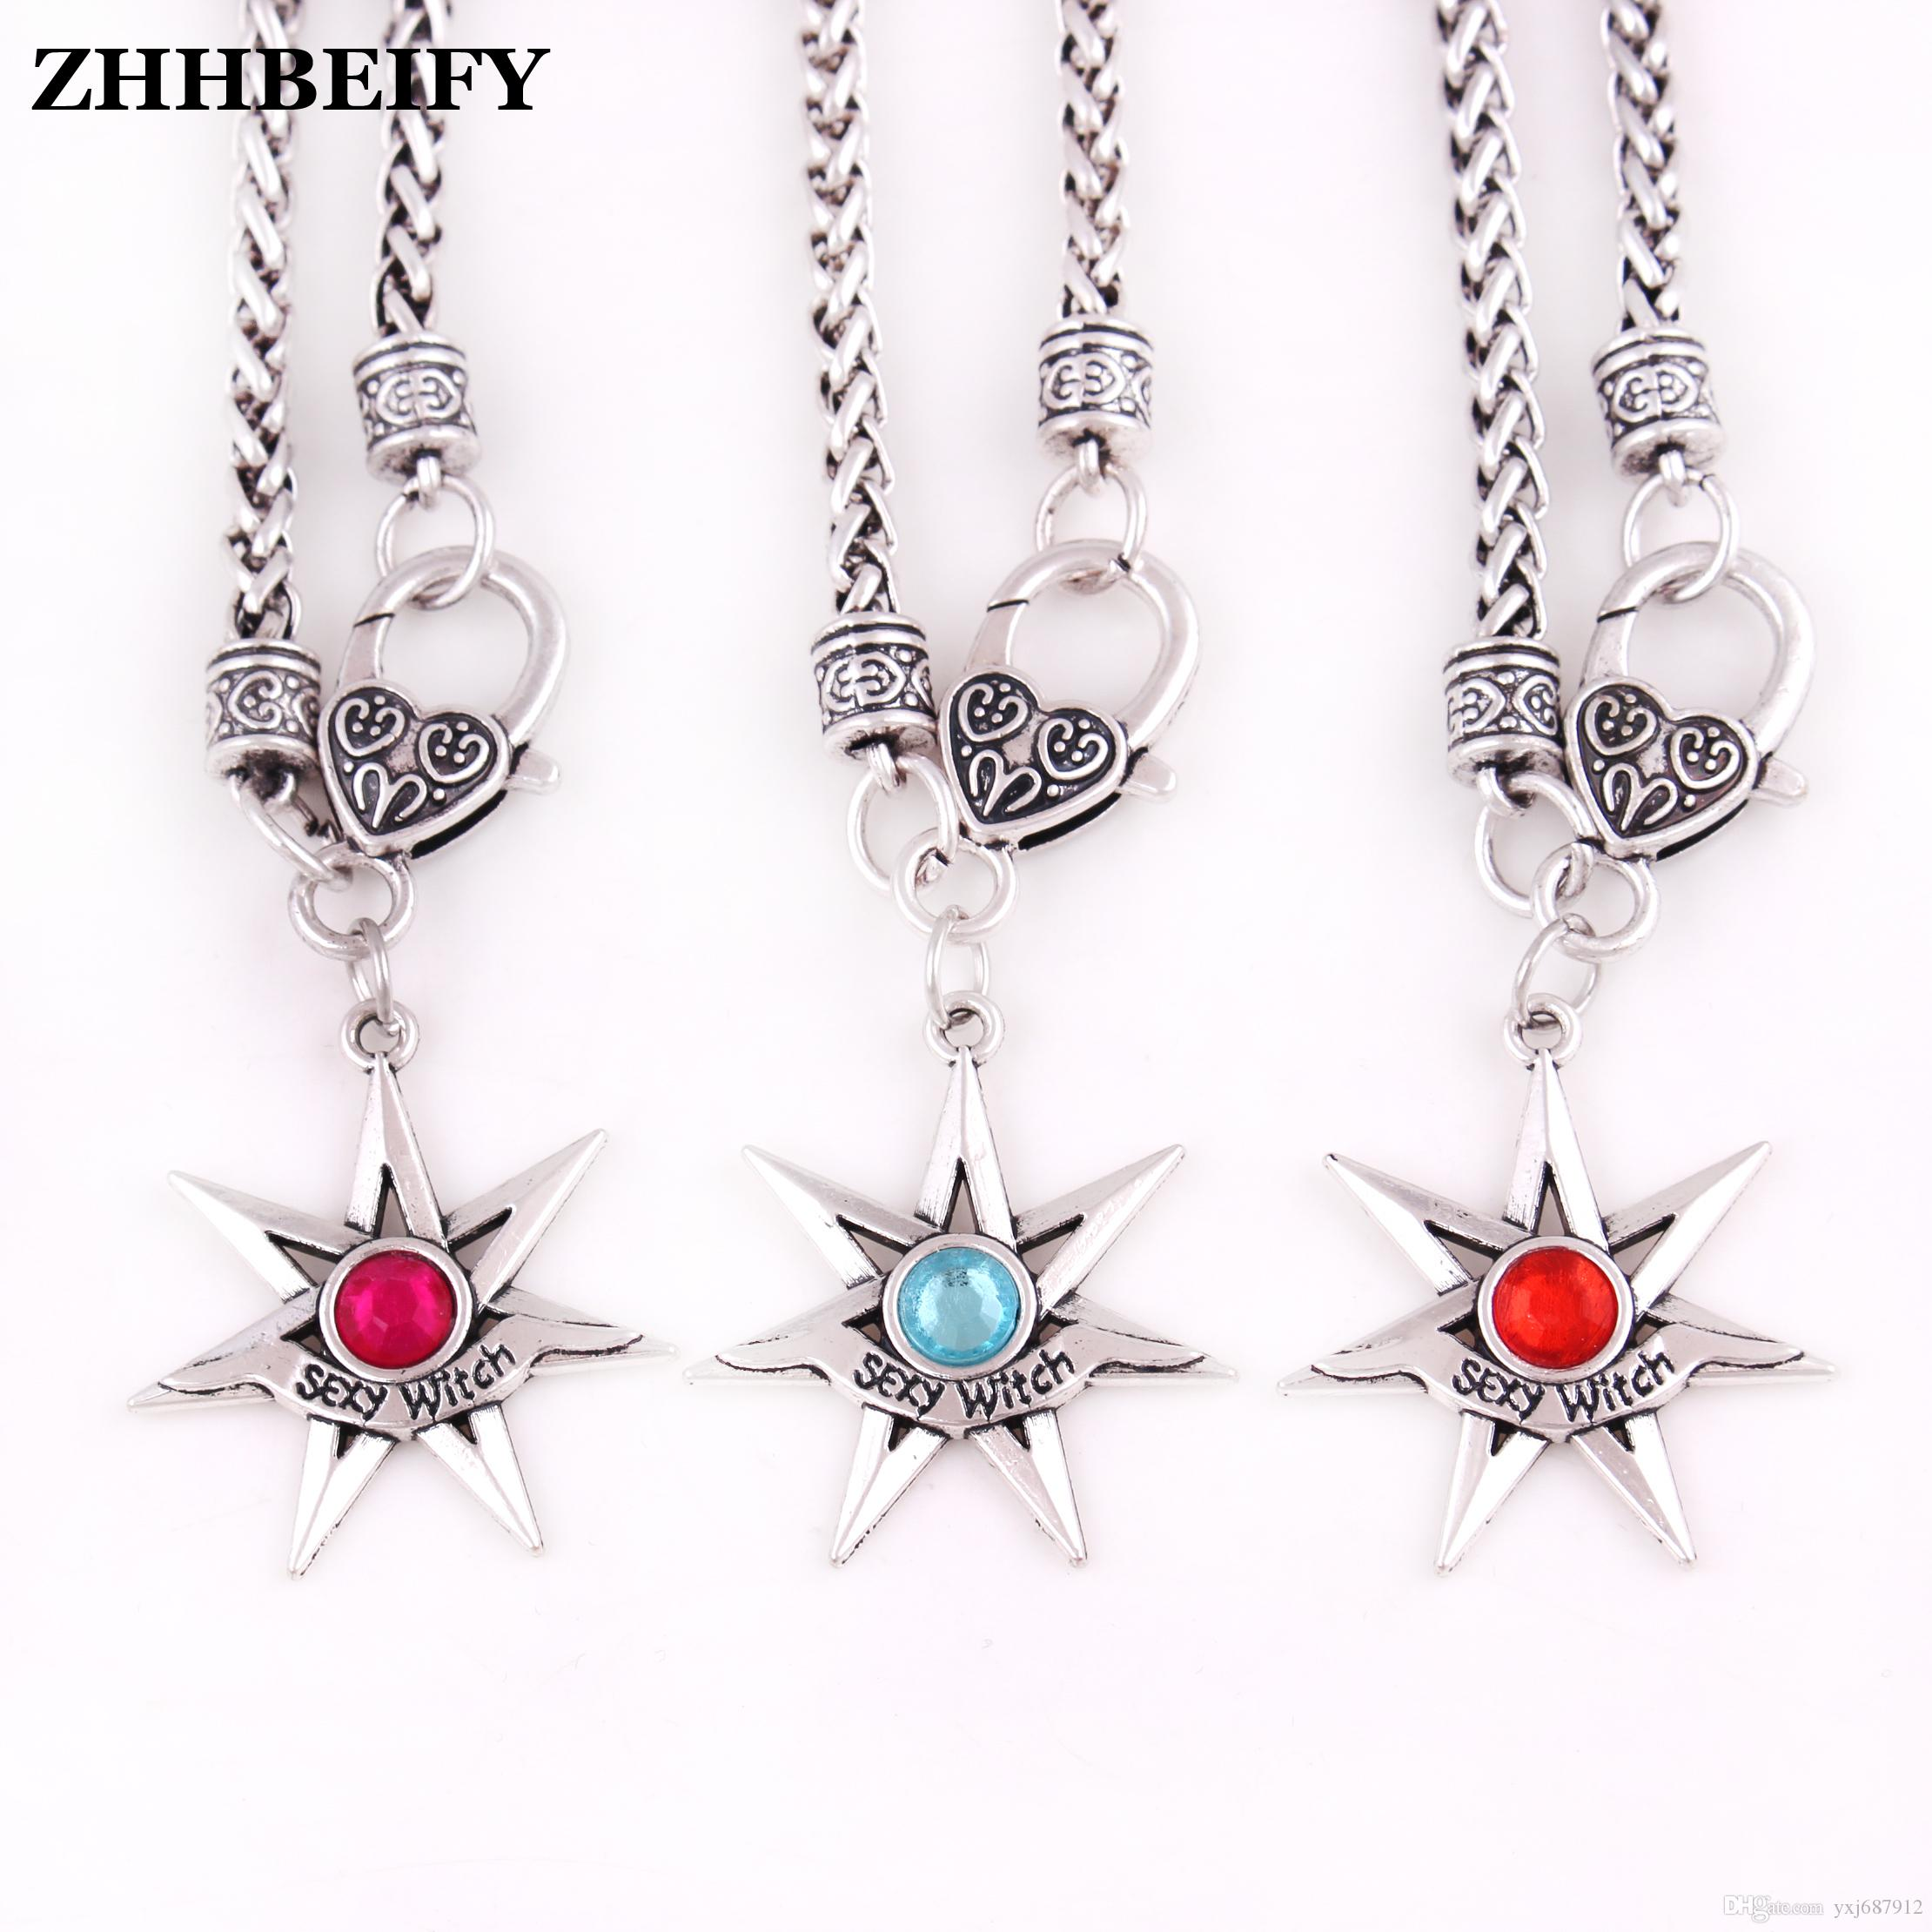 L35 Drop shipping Fashion Sexy Witch Pendant wheat link chain Necklace FAERY STAR pendant with crystal choice - Fairy Fae Magick